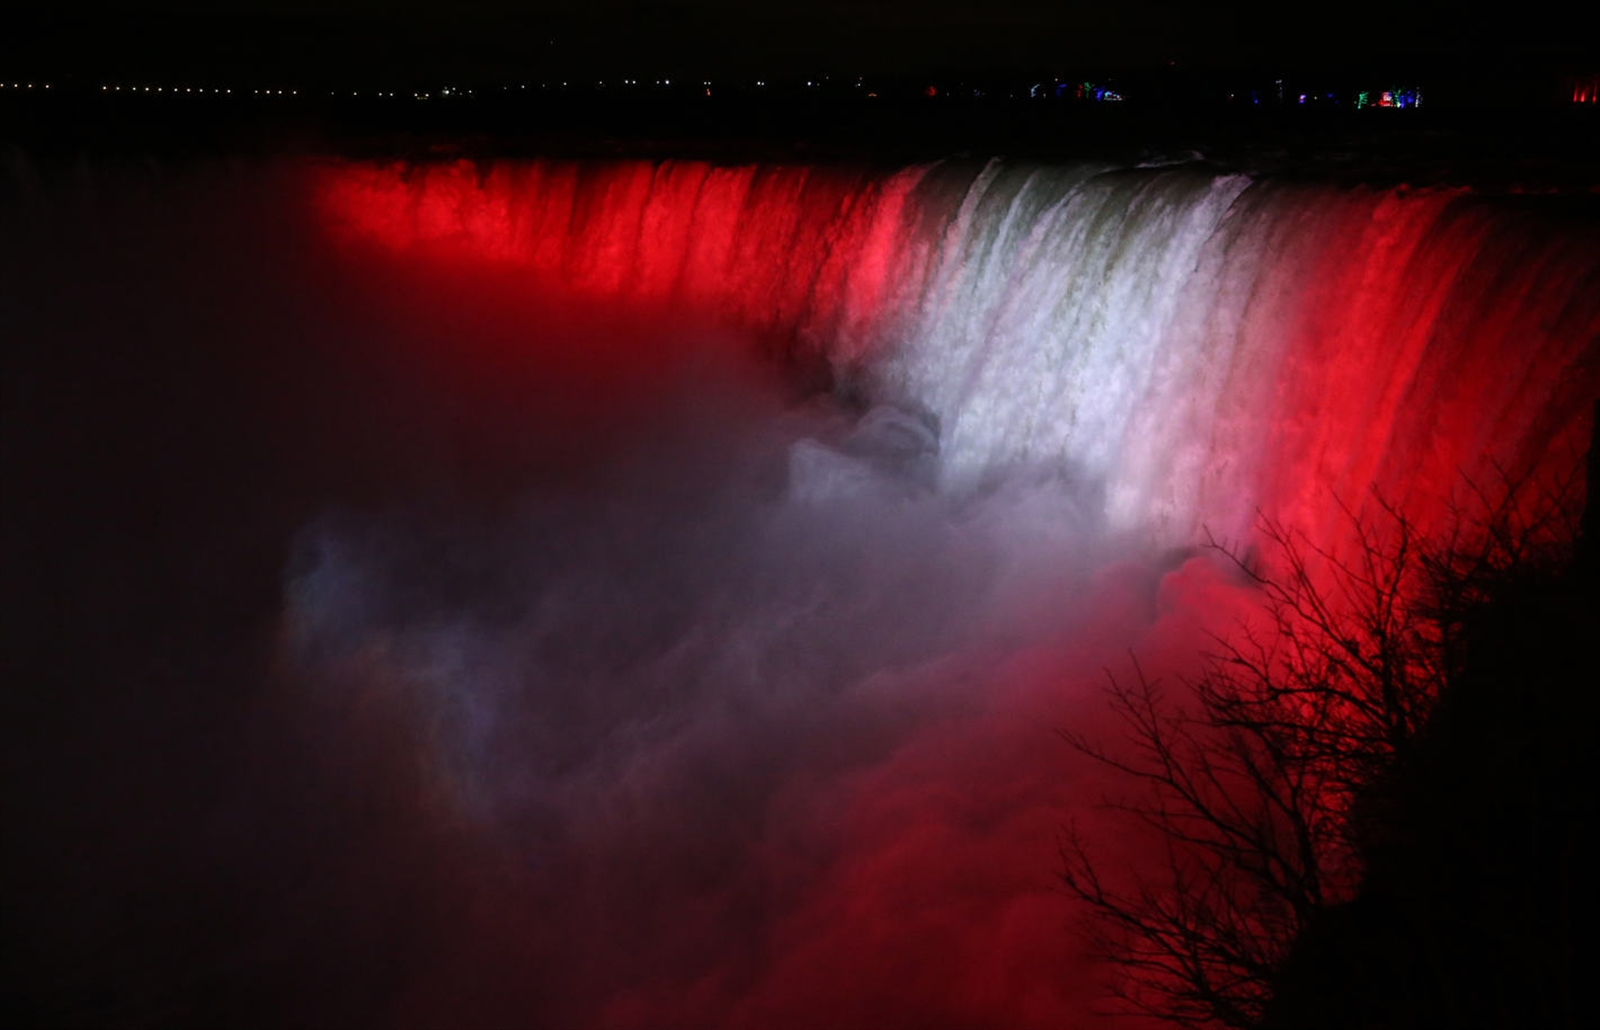 The Horseshoe Falls is lit up in vibrant red and white.